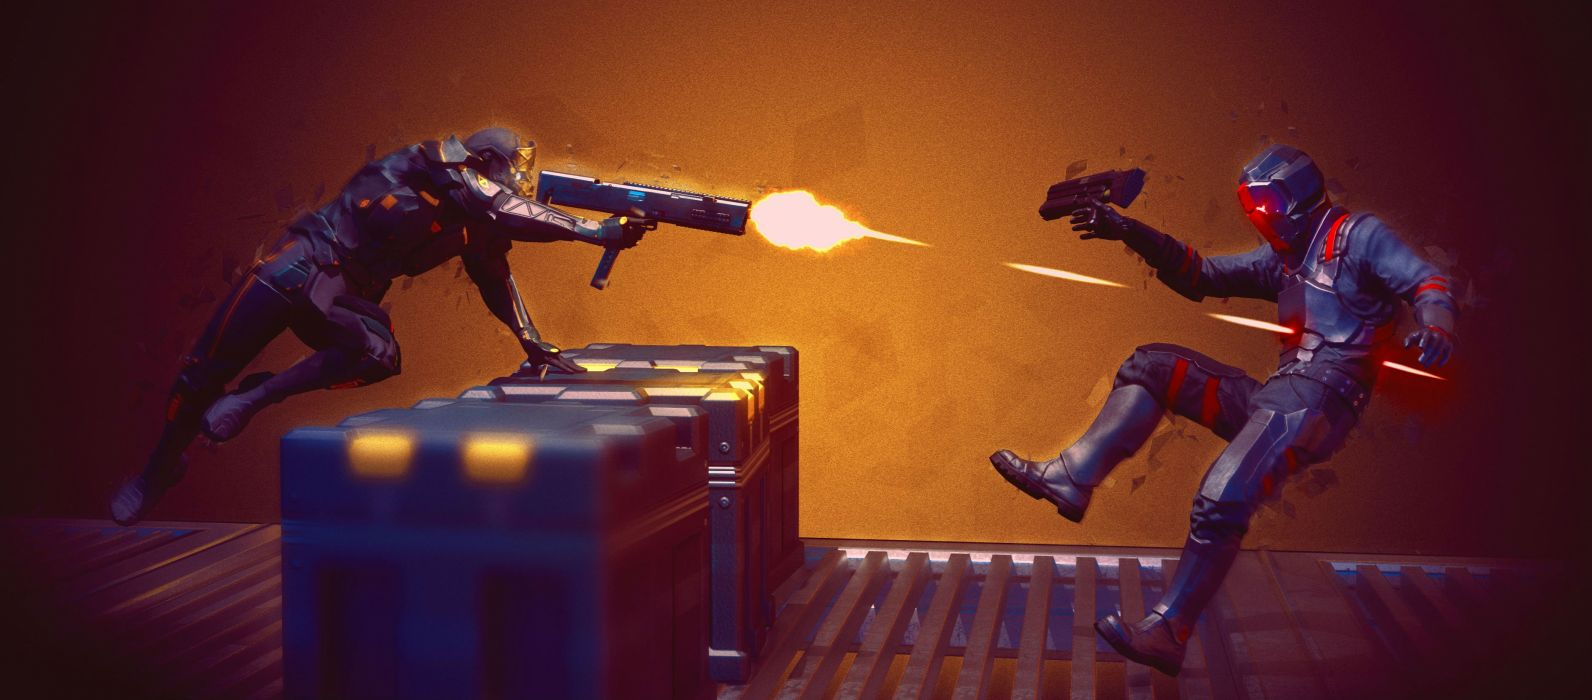 HOLLOWPOINT battle acttion futuristic sci-fi shooter wallpaper